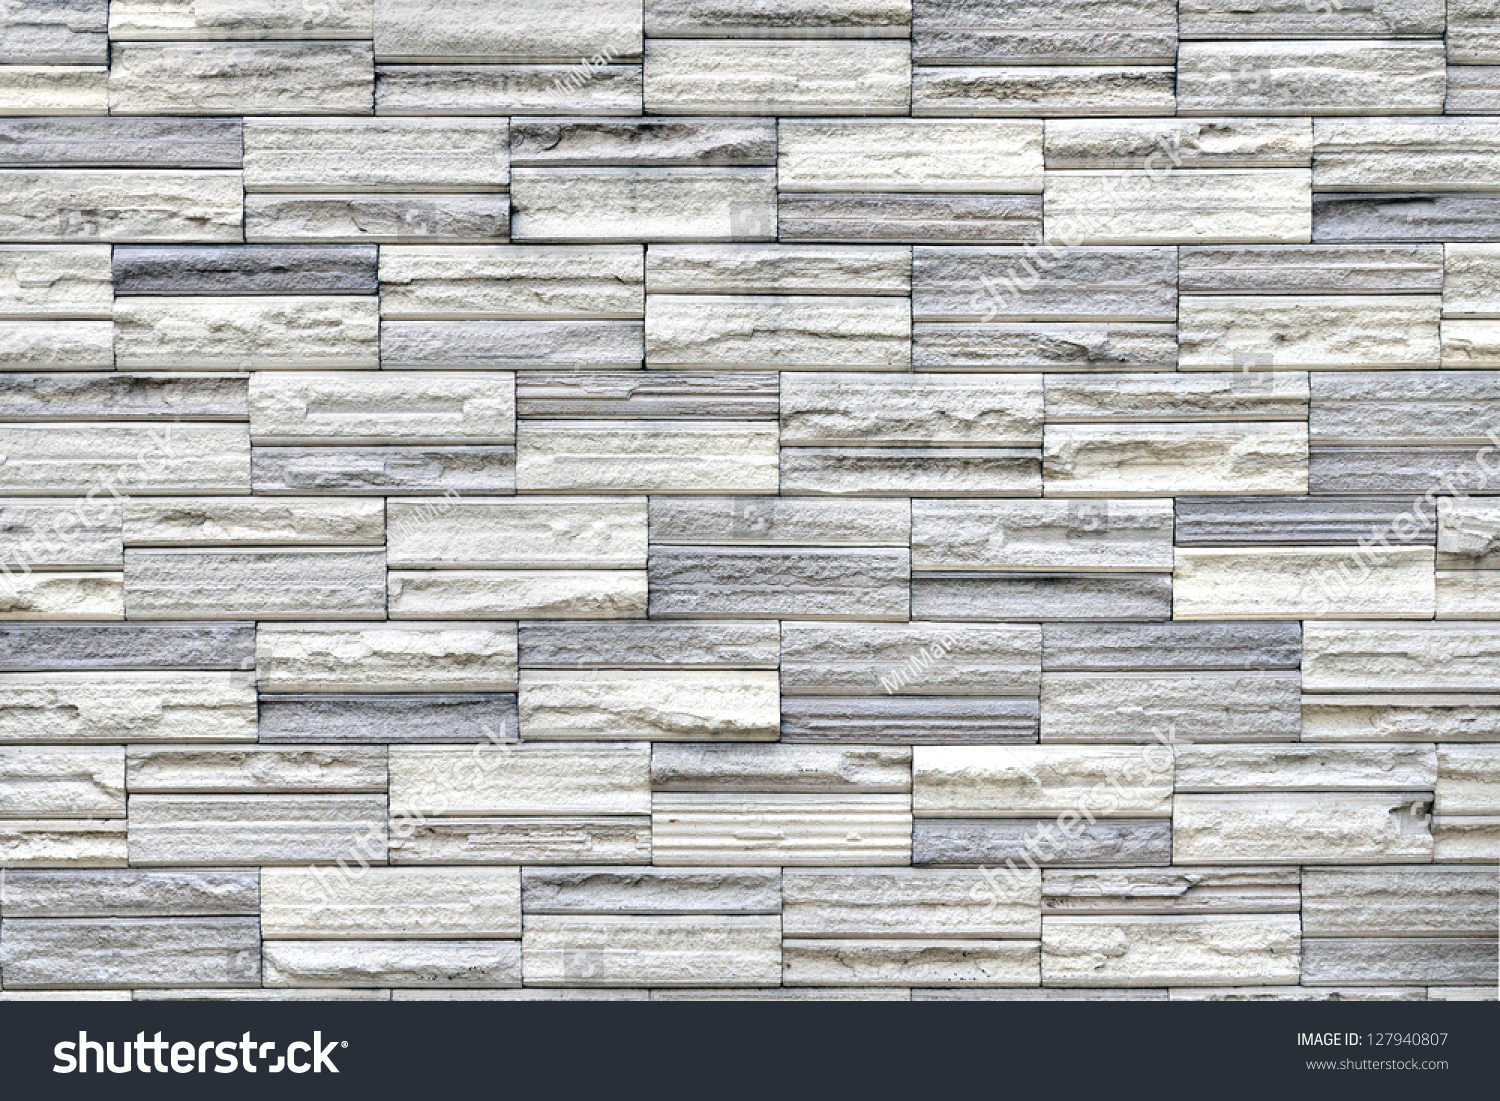 Grey Stone Tile Texture Brick Wall Stock Photo 127940807